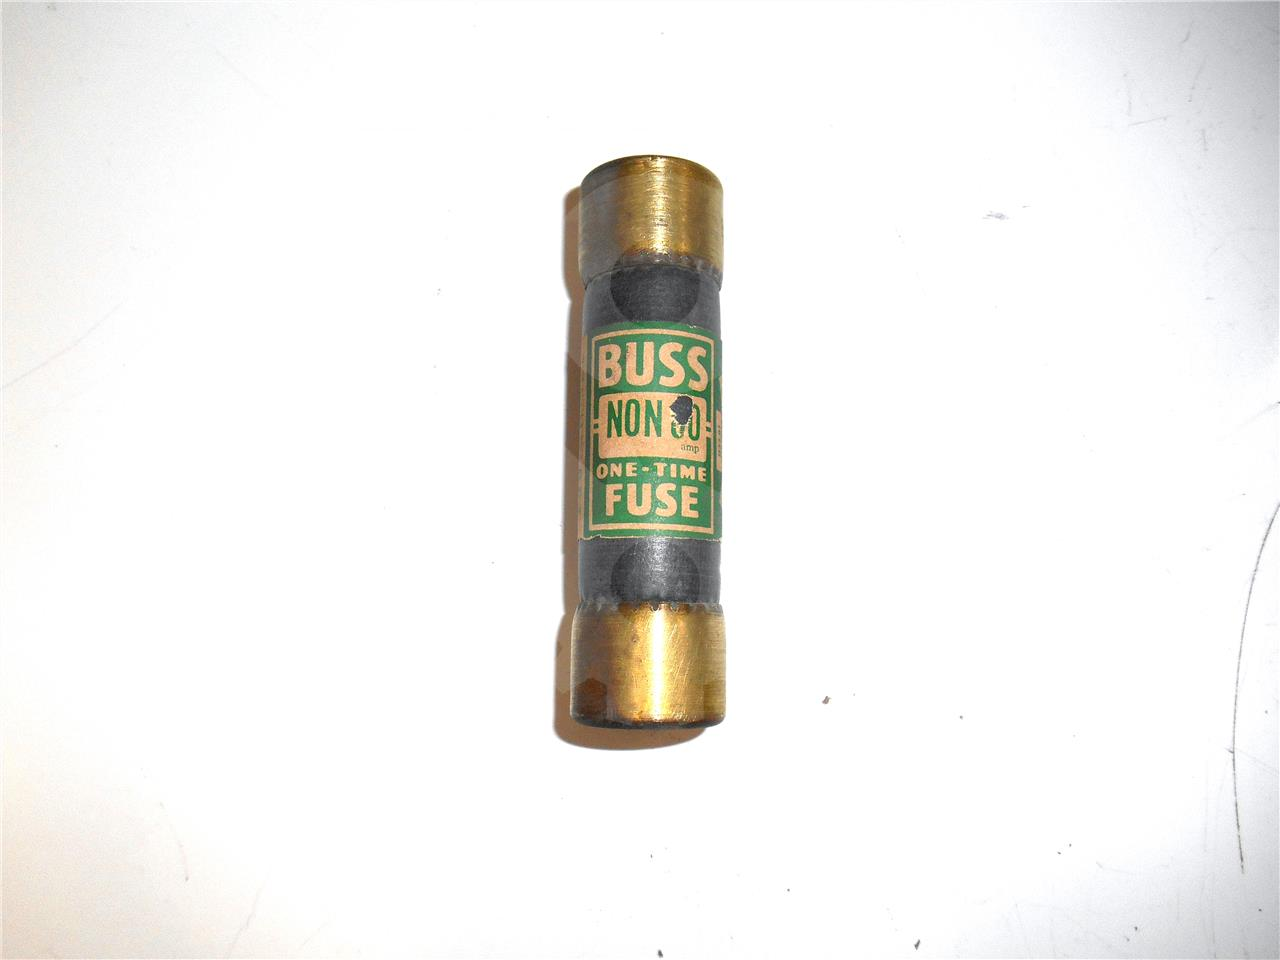 Bussman 60A BUSSMAN CURRENT LIMITING FUSE